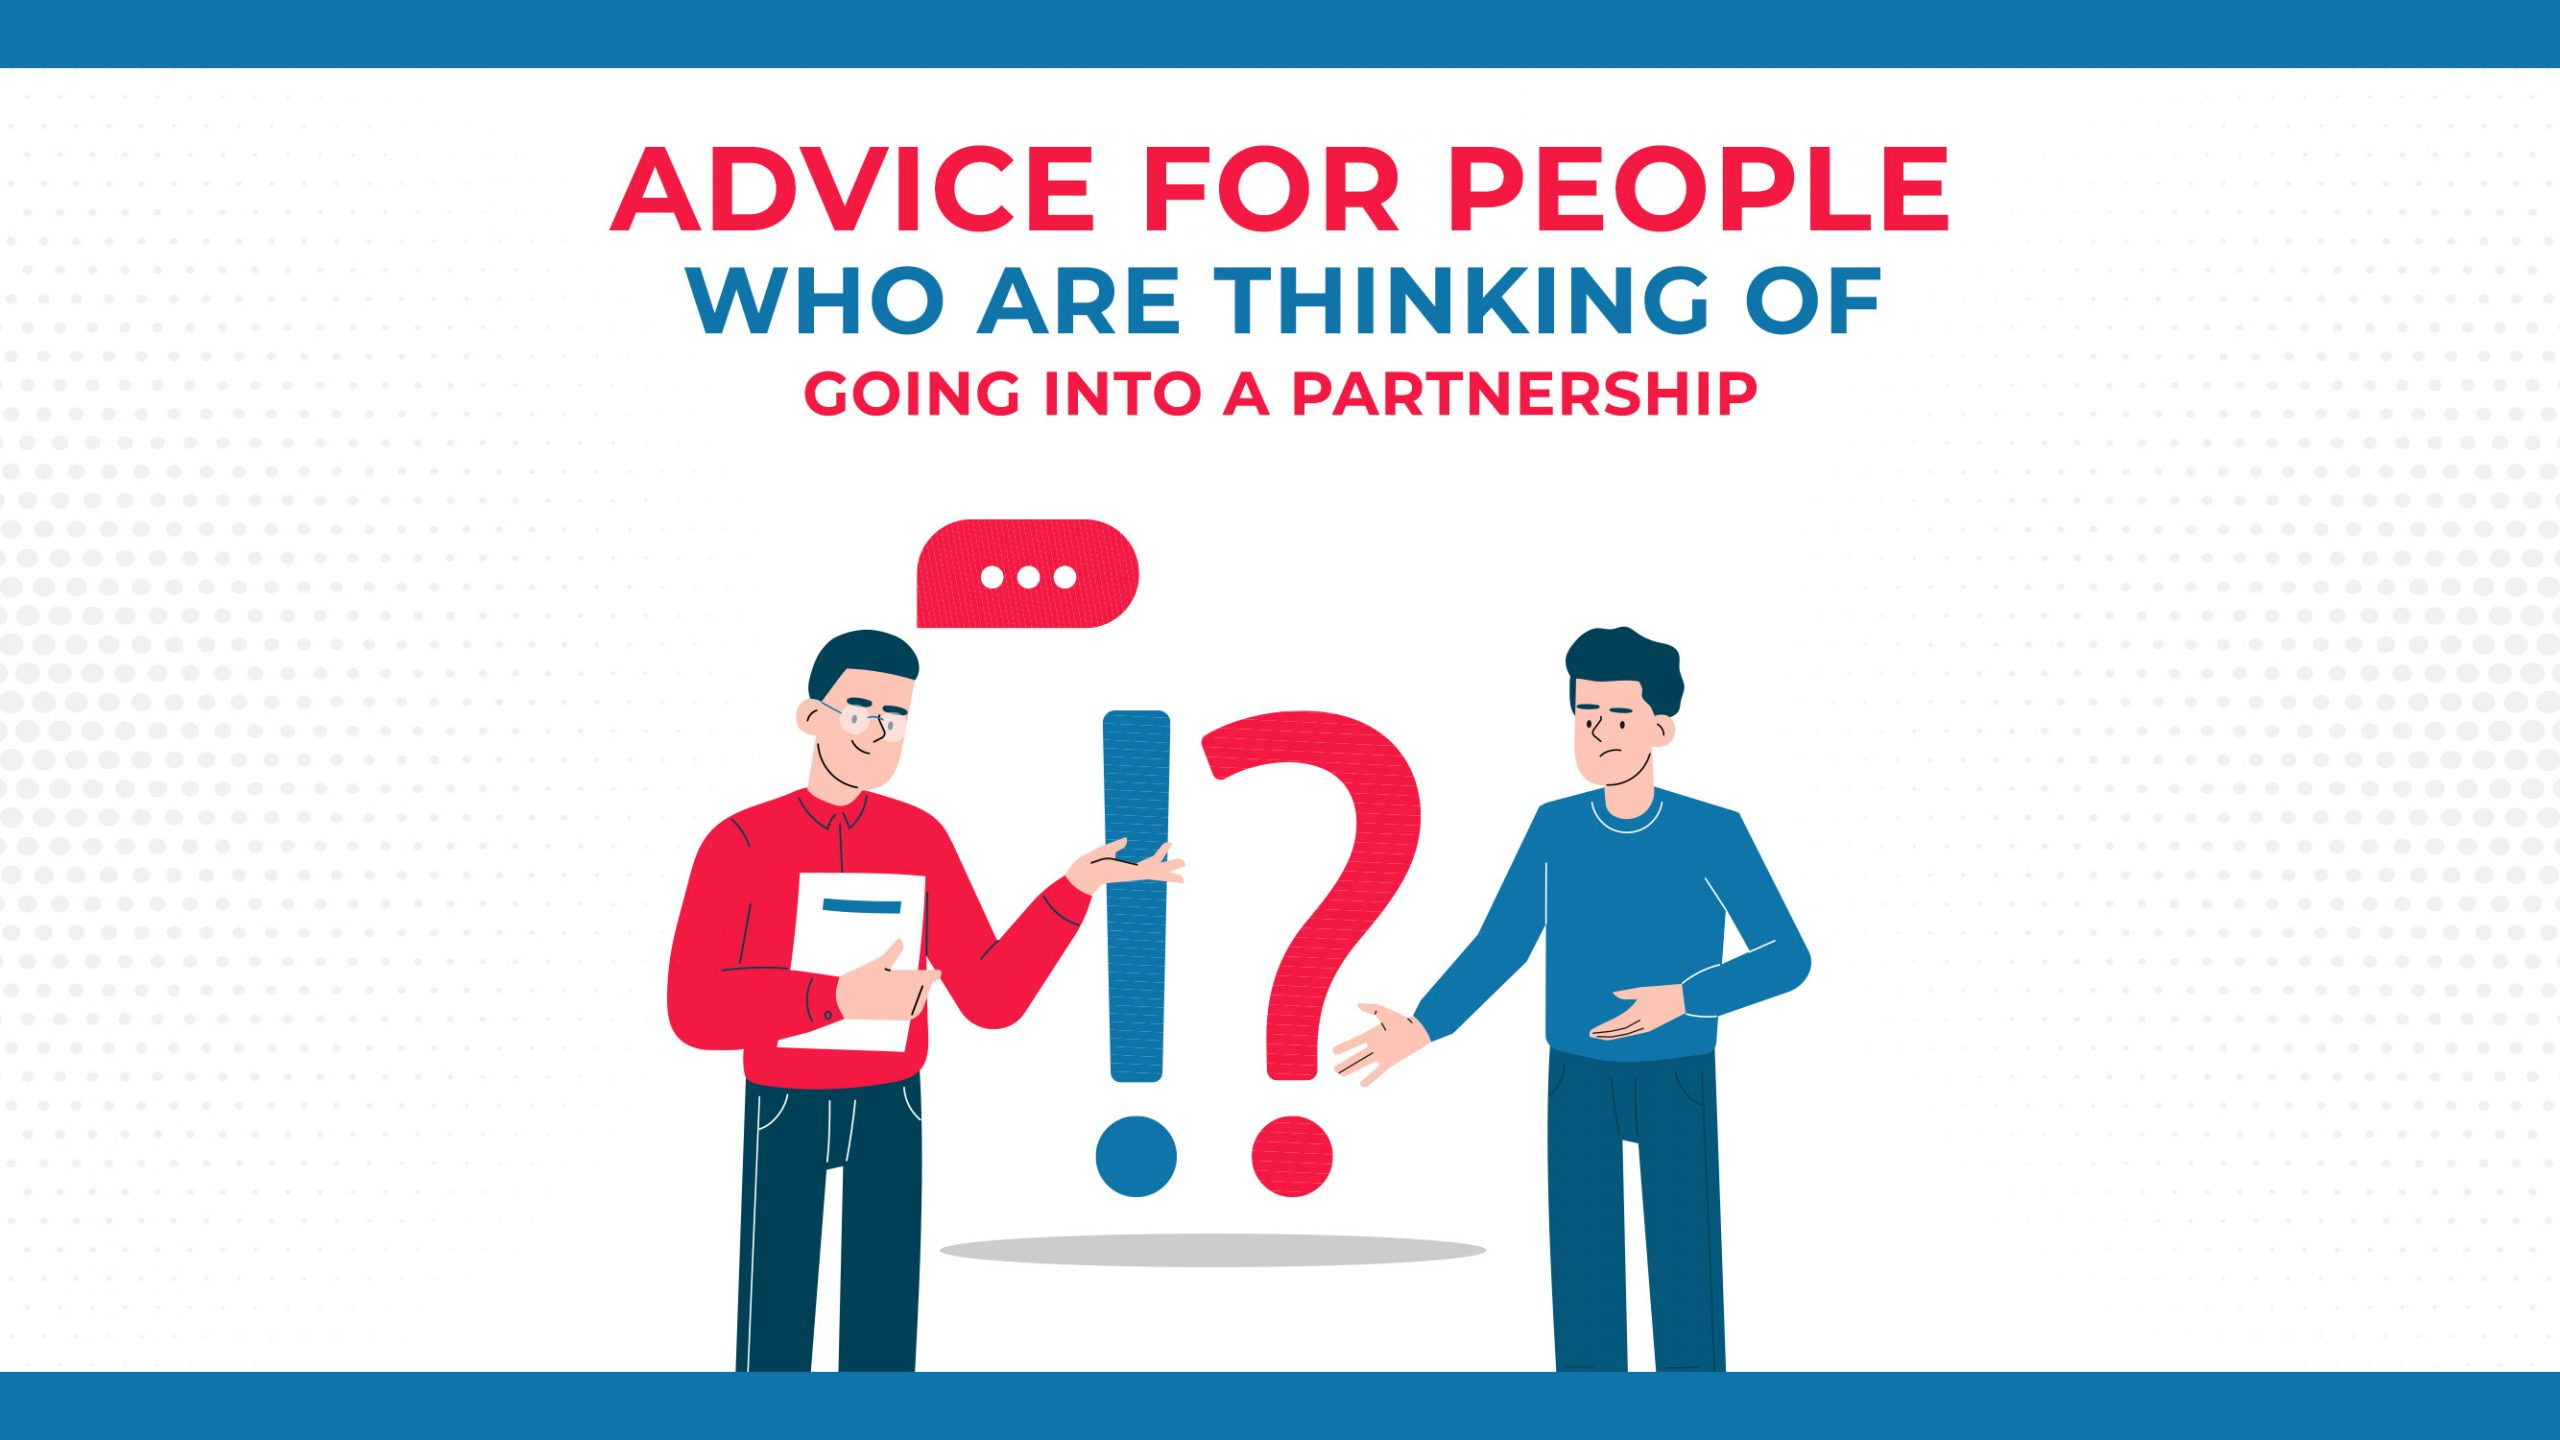 Advice For People Who Are Thinking Of Going Into A Partnership